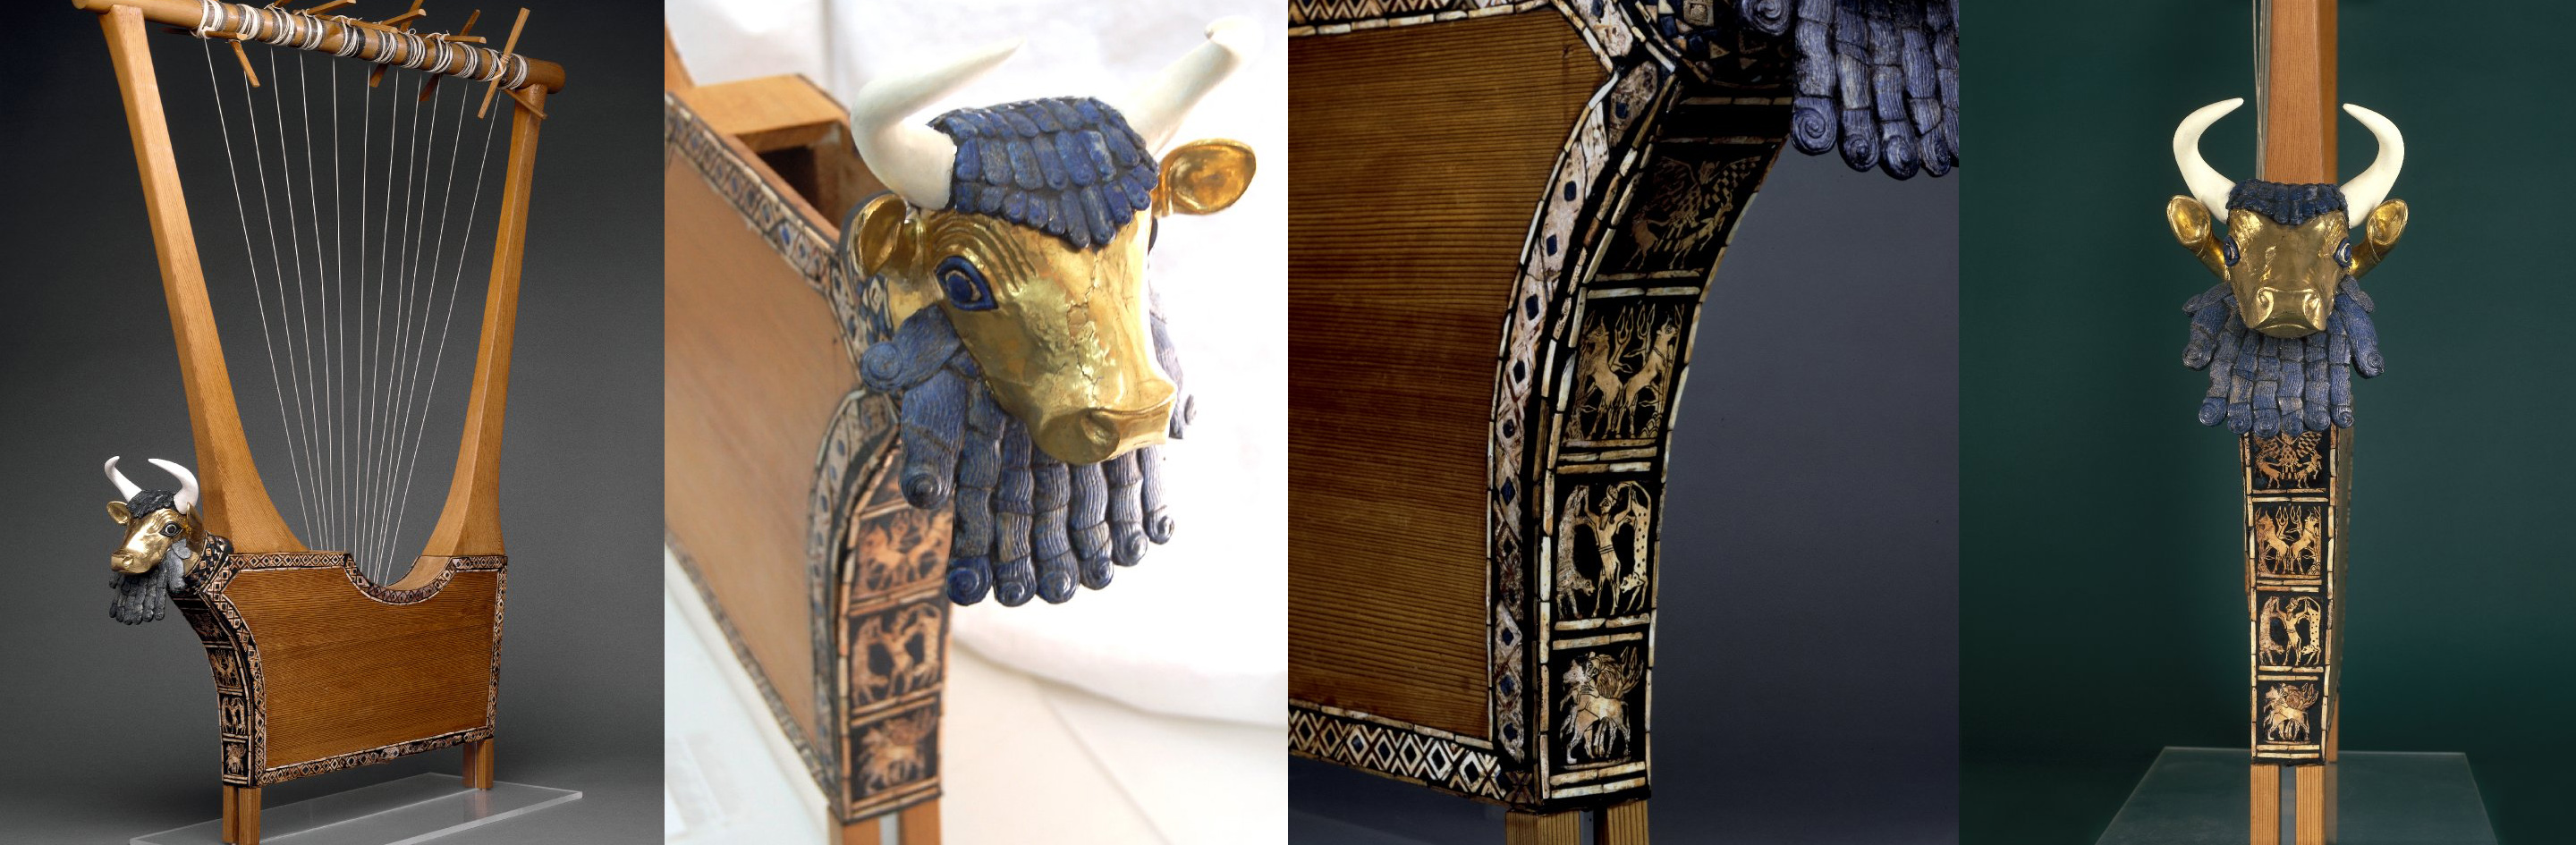 Queen's Lyre (reconstruction), 2600 B.C.E., wooden parts, pegs and string are modern; lapis lazuli, shell and red limestone mosaic decoration, set in bitumen and the head (but not the horns) of the bull are ancient; the bull's head in front of the sound box is covered with gold; the eyes are lapis lazuli and shell and the hair and beard are lapis lazuli; the significance of the beard is not known; panel on front depicts lion-headed eagle between gazelles, bulls with plants on hills, a bull-man between leopards and a lion attacking a bull; edges of the sound-box decorated with inlay bands; eleven gold-headed pegs for the strings, 112.5 x 73 x 7 cm (body) © The Trustees of the British Museum